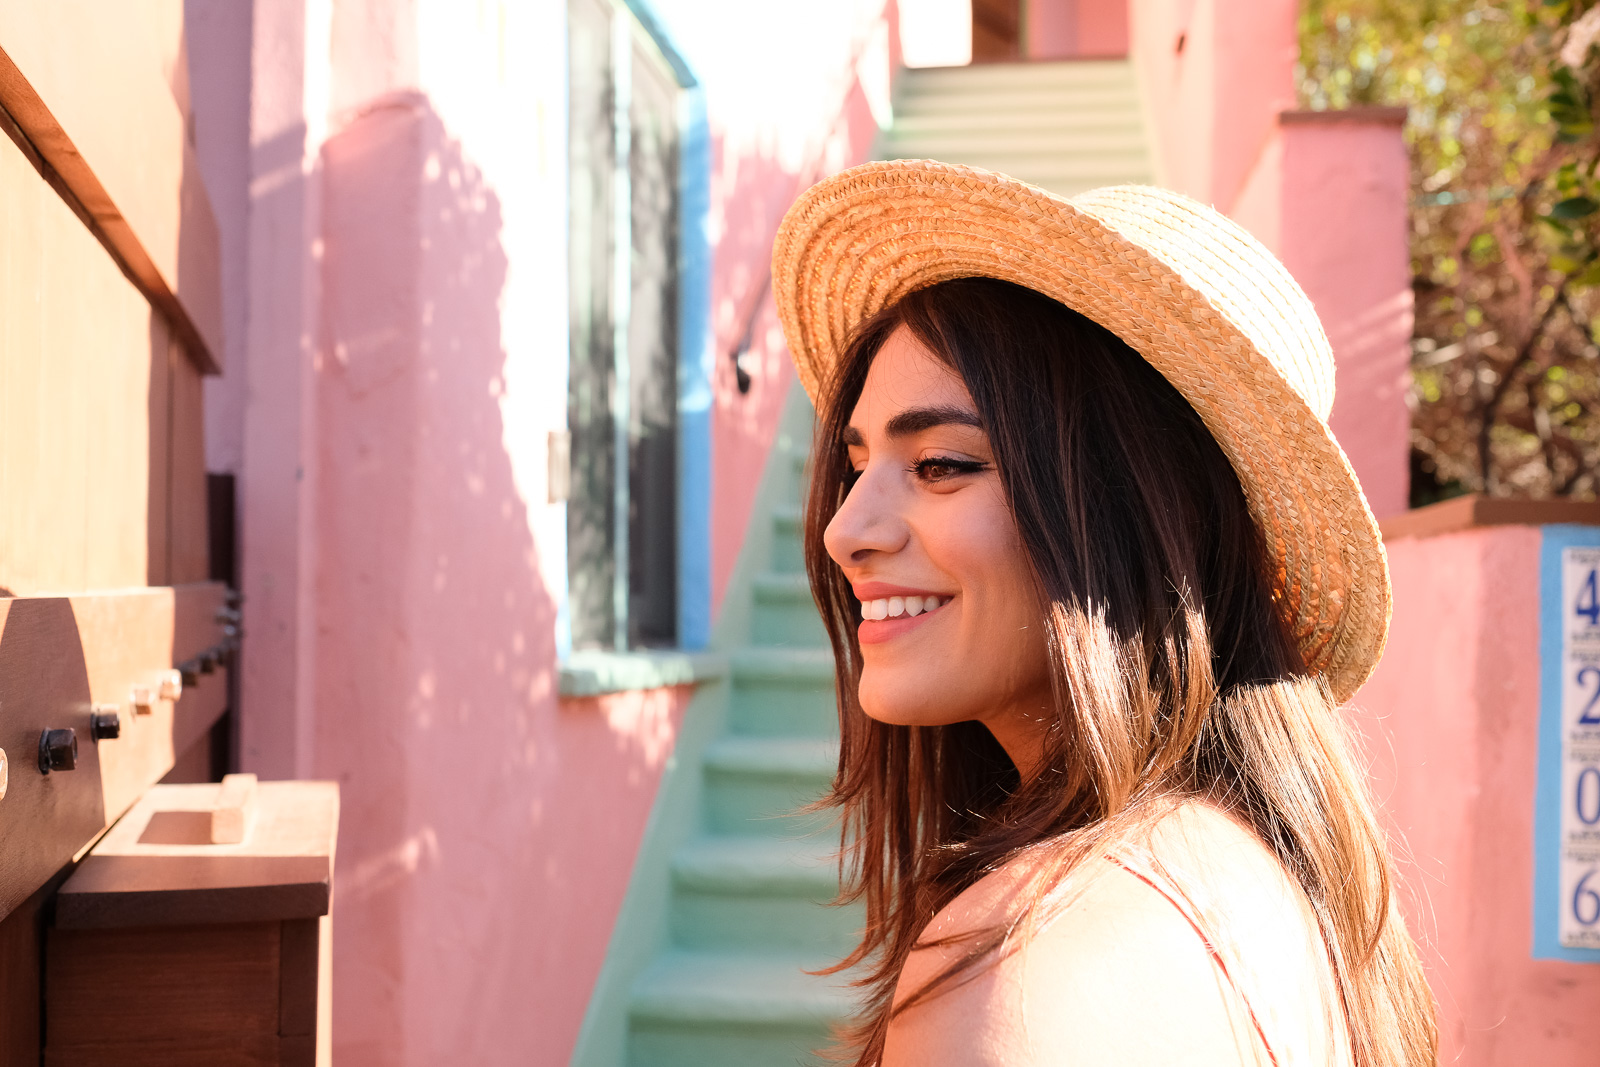 Straw hat, pink and mint stairs